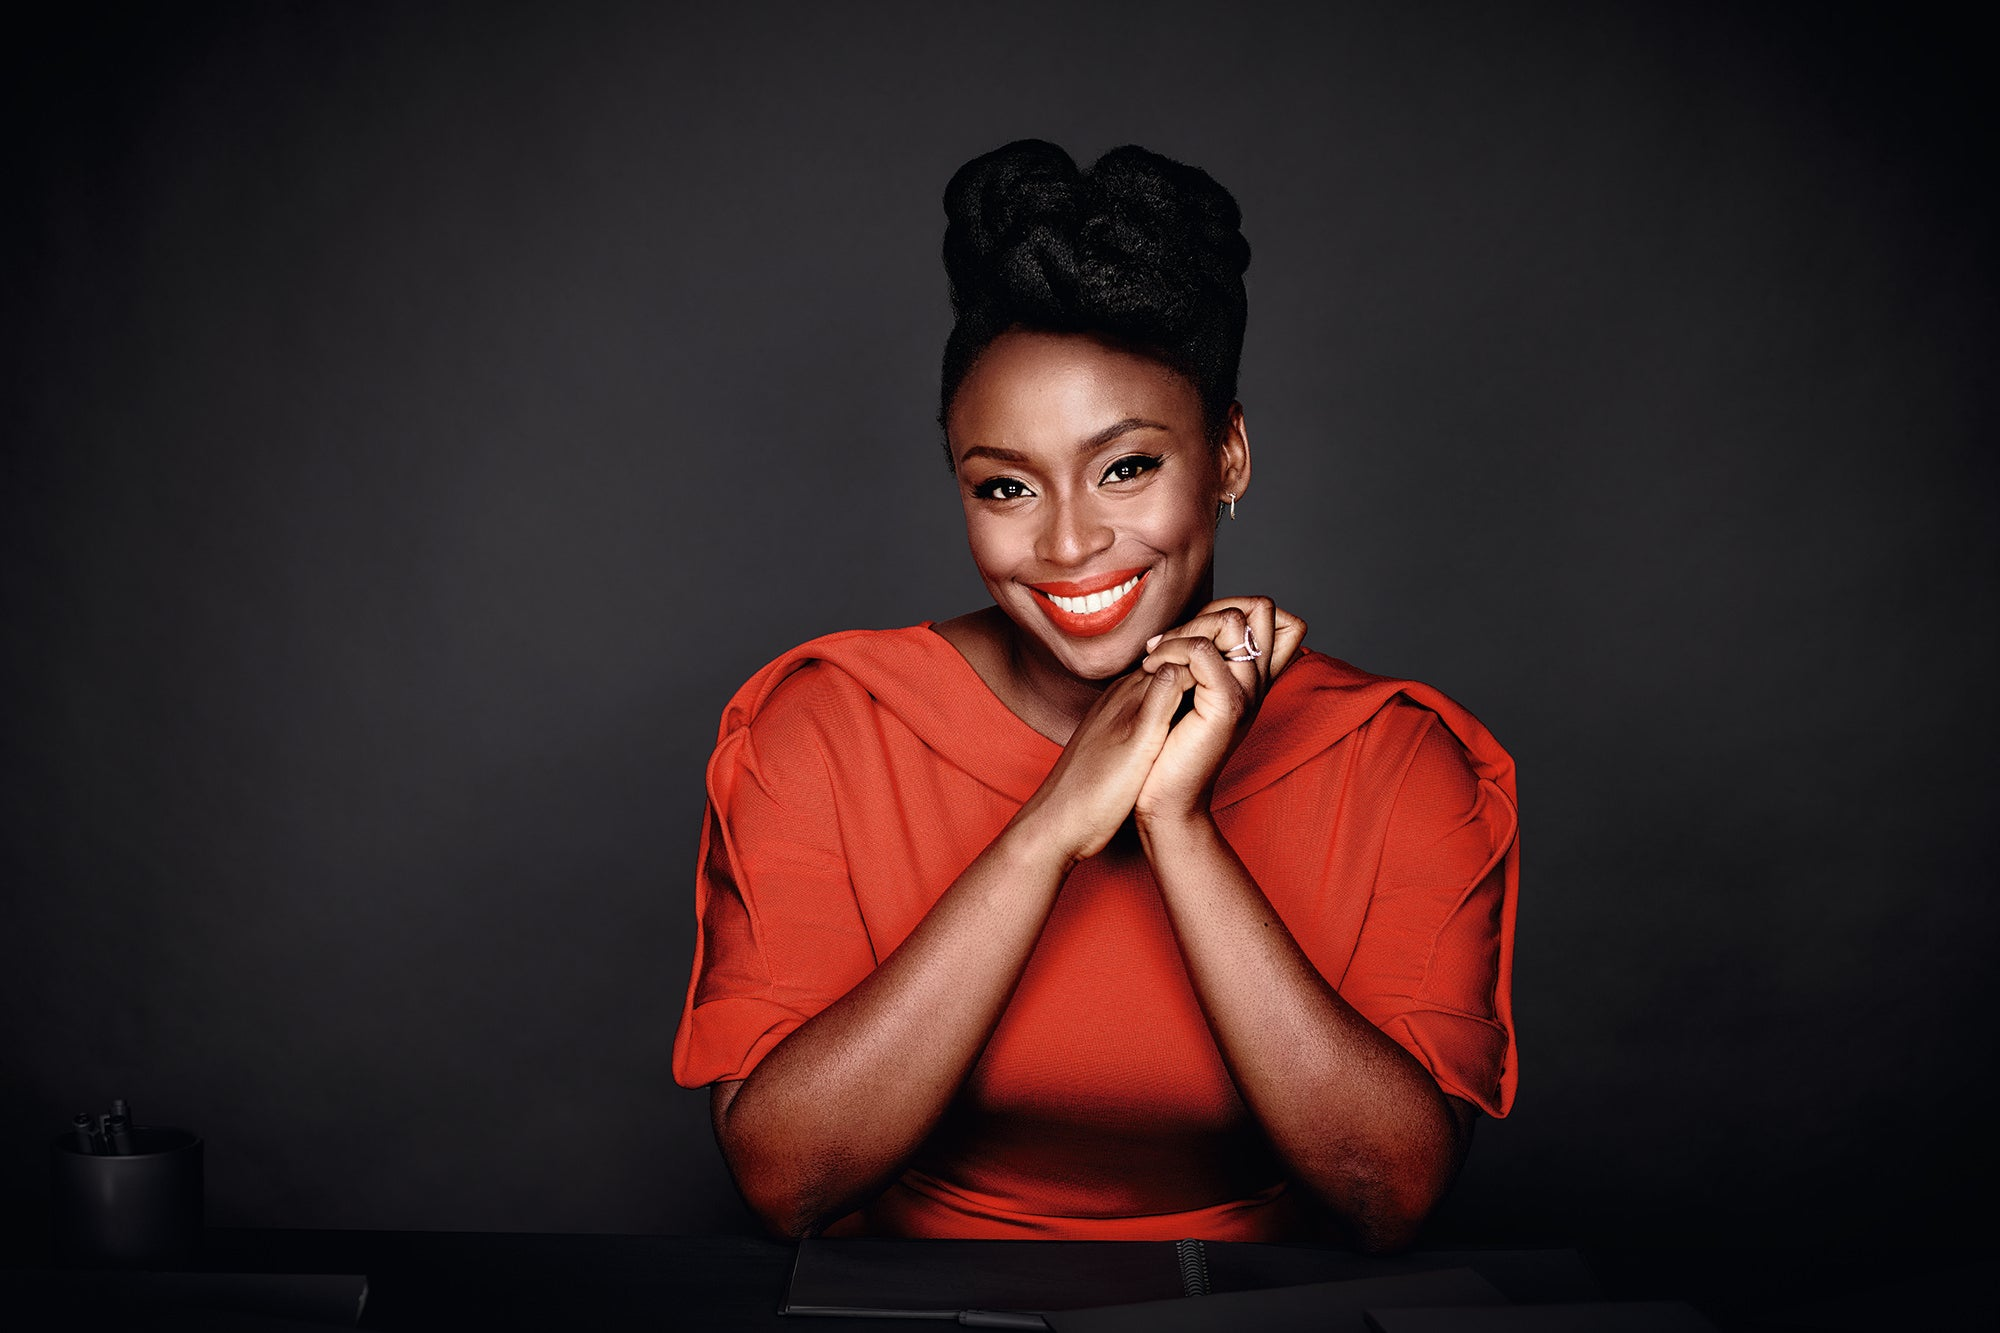 Chimamanda Ngozi Adiche Says Makeup and Feminism Aren't Mutually Exclusive: 'I Don't Need to Intellectualize My Interest'